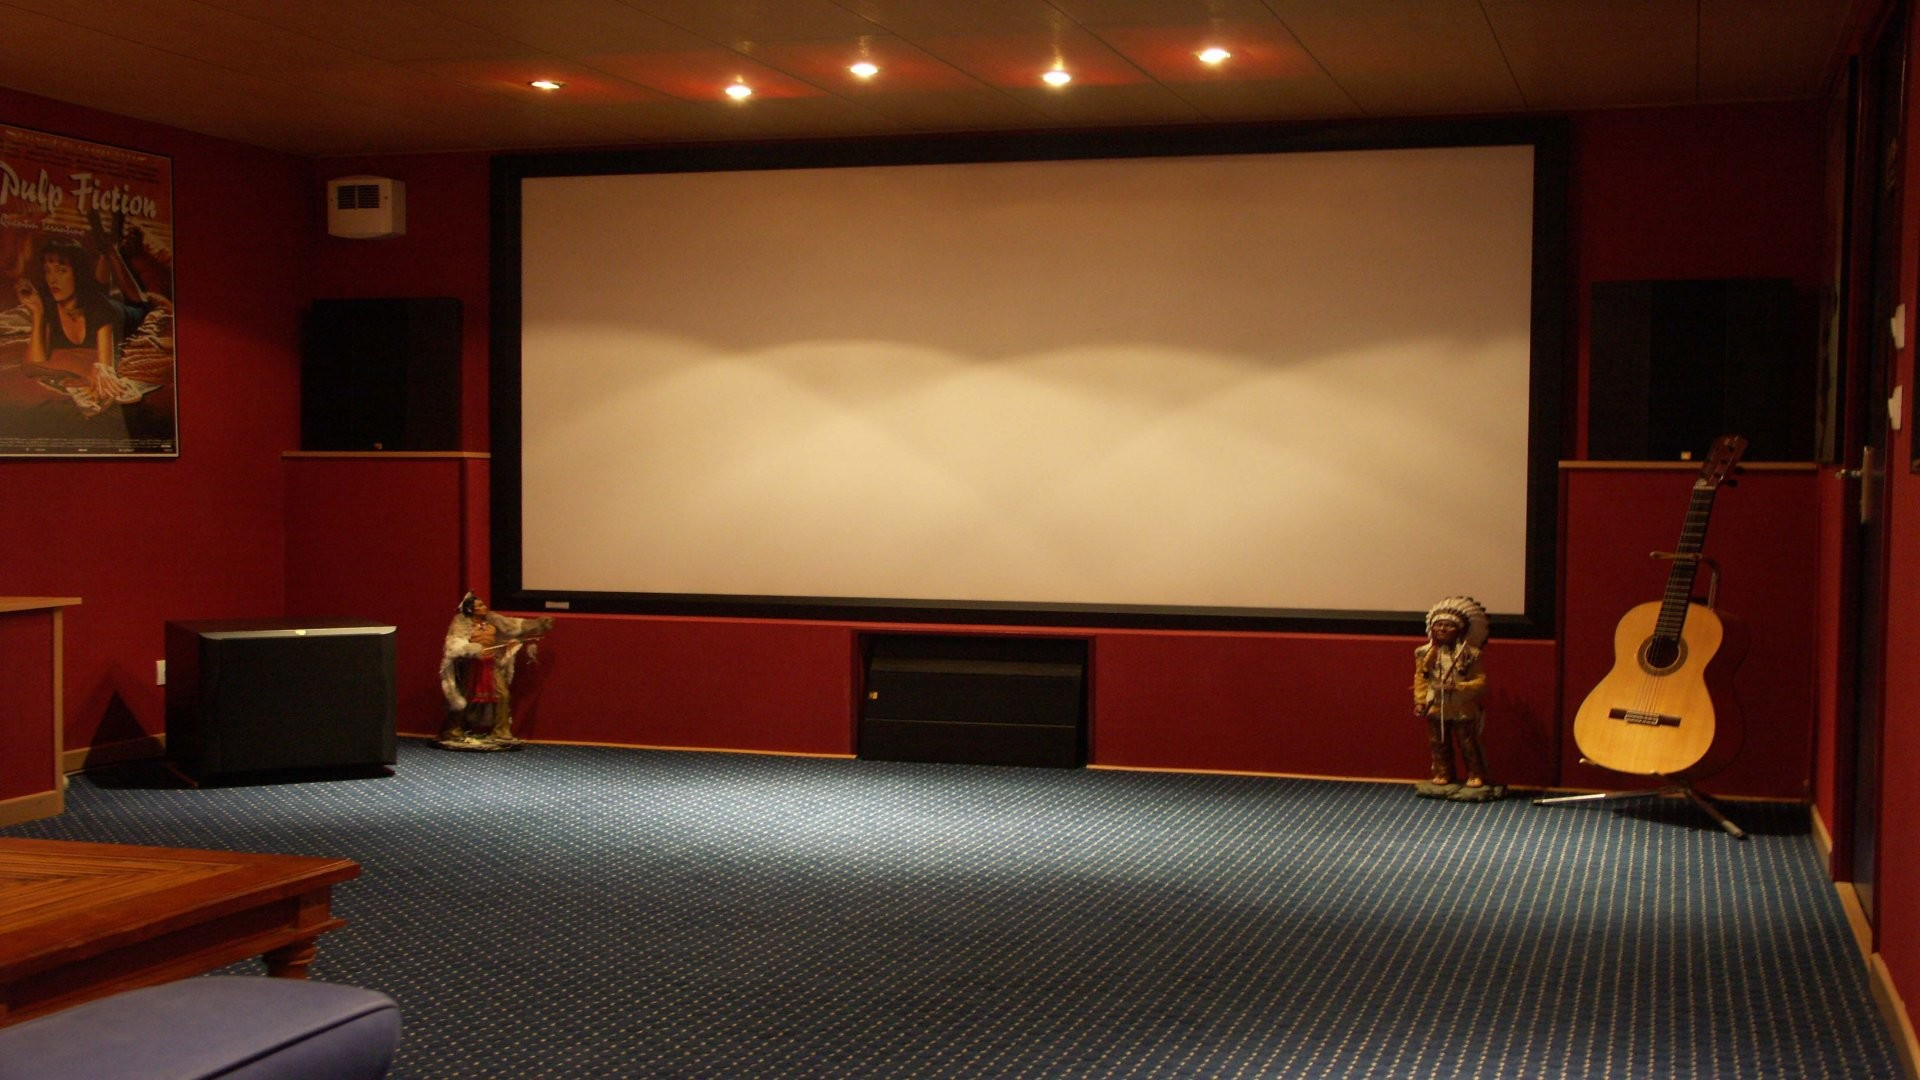 Movie Theater Wallpaper (59+ images)